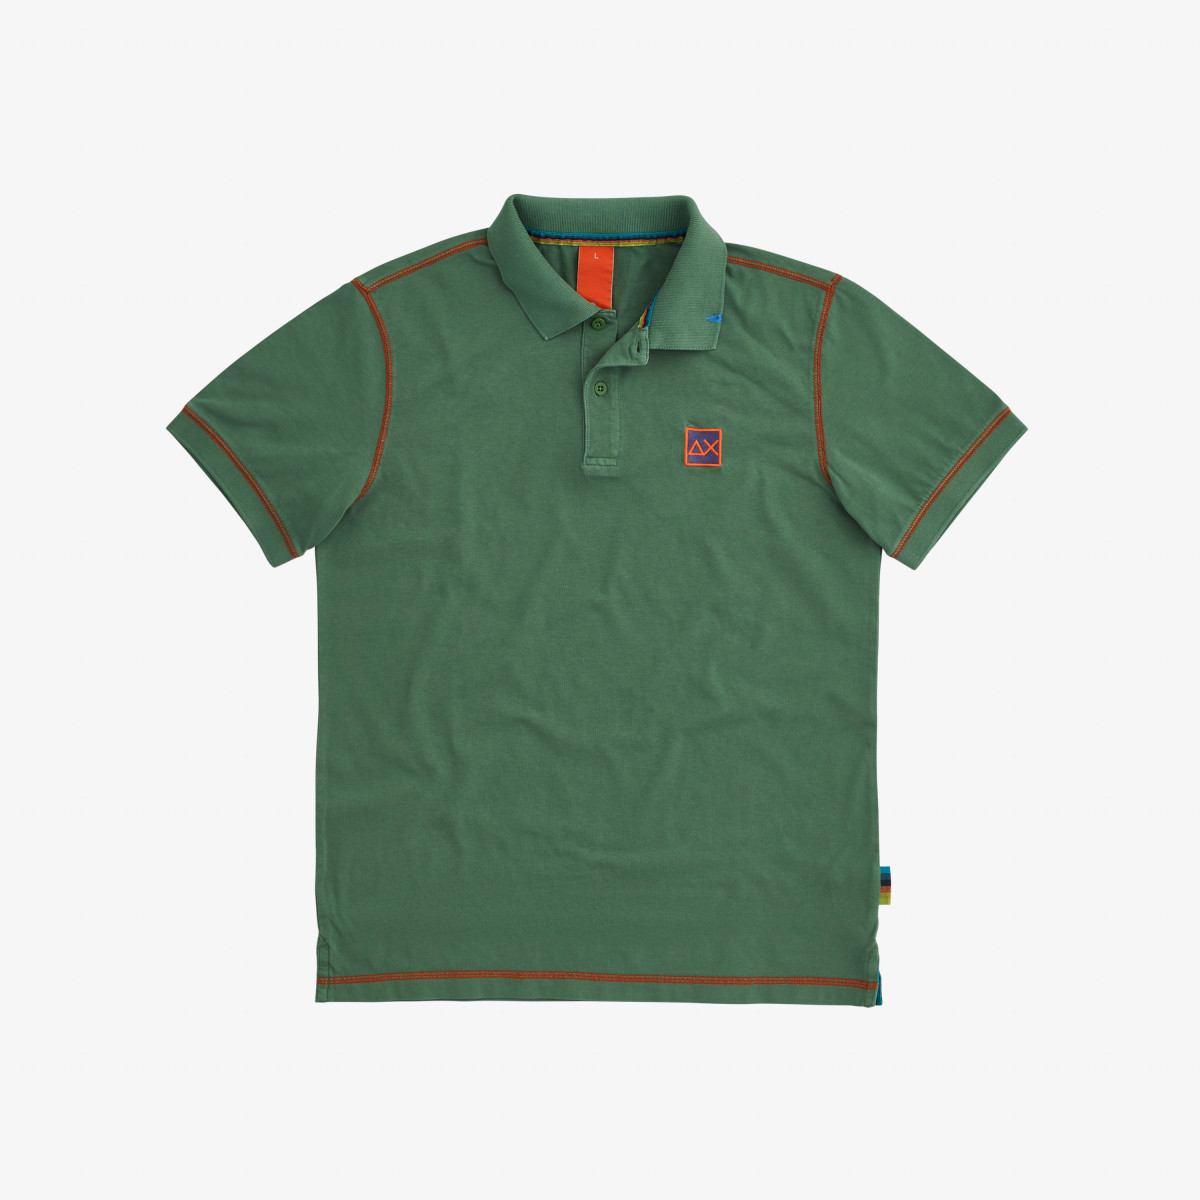 POLO COLD DYE CONTRAST STITCHING SAGE GREEN